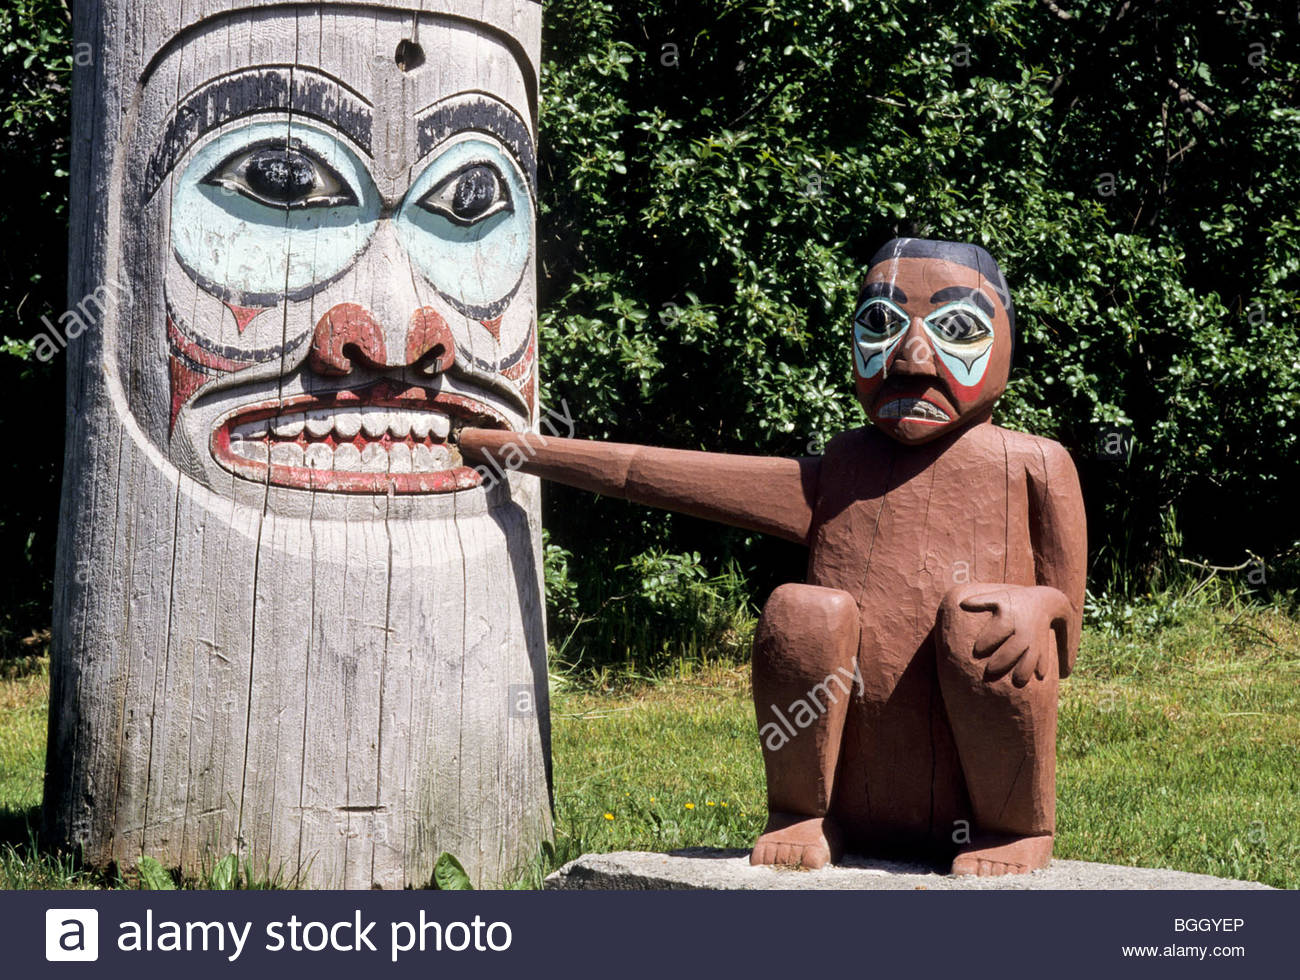 Myth - Human / Bear on Totem saxman, alaska. - Stock Image